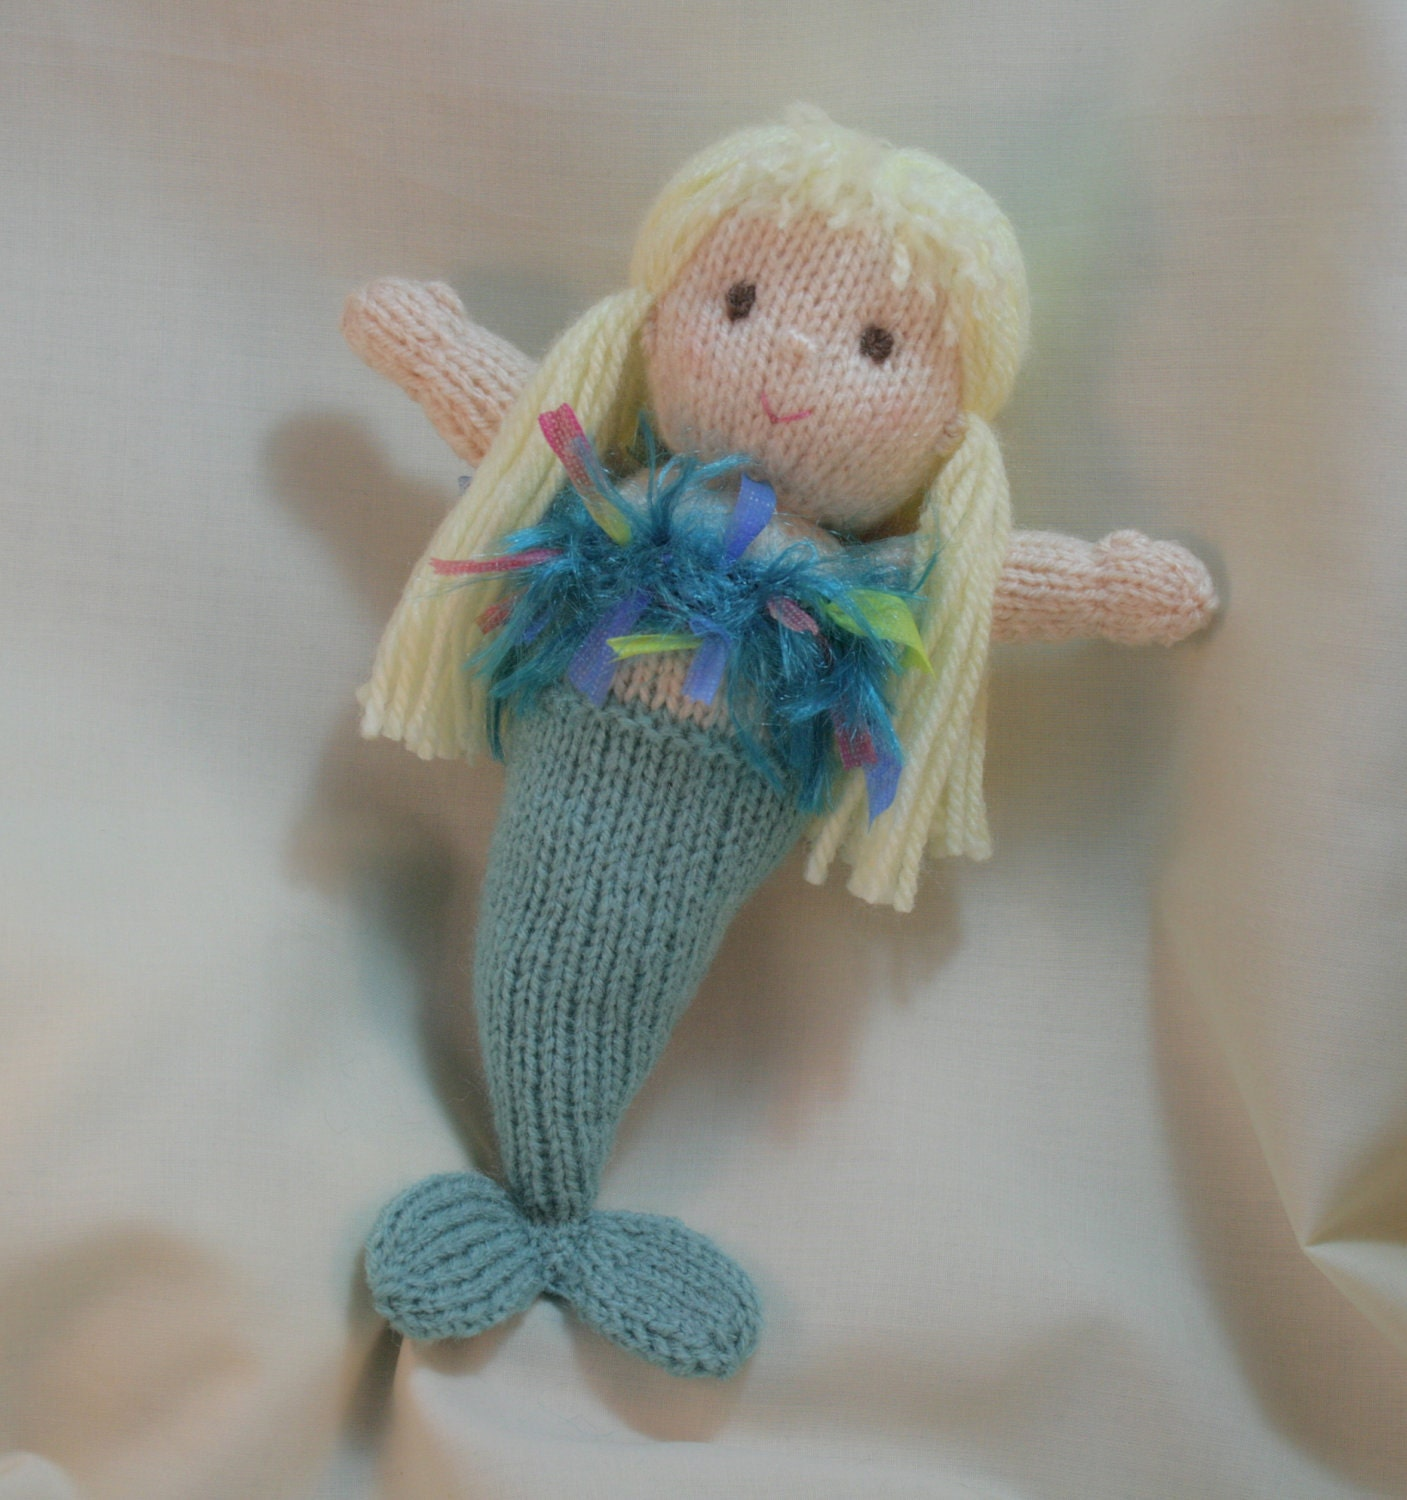 Mermaid knitted soft doll